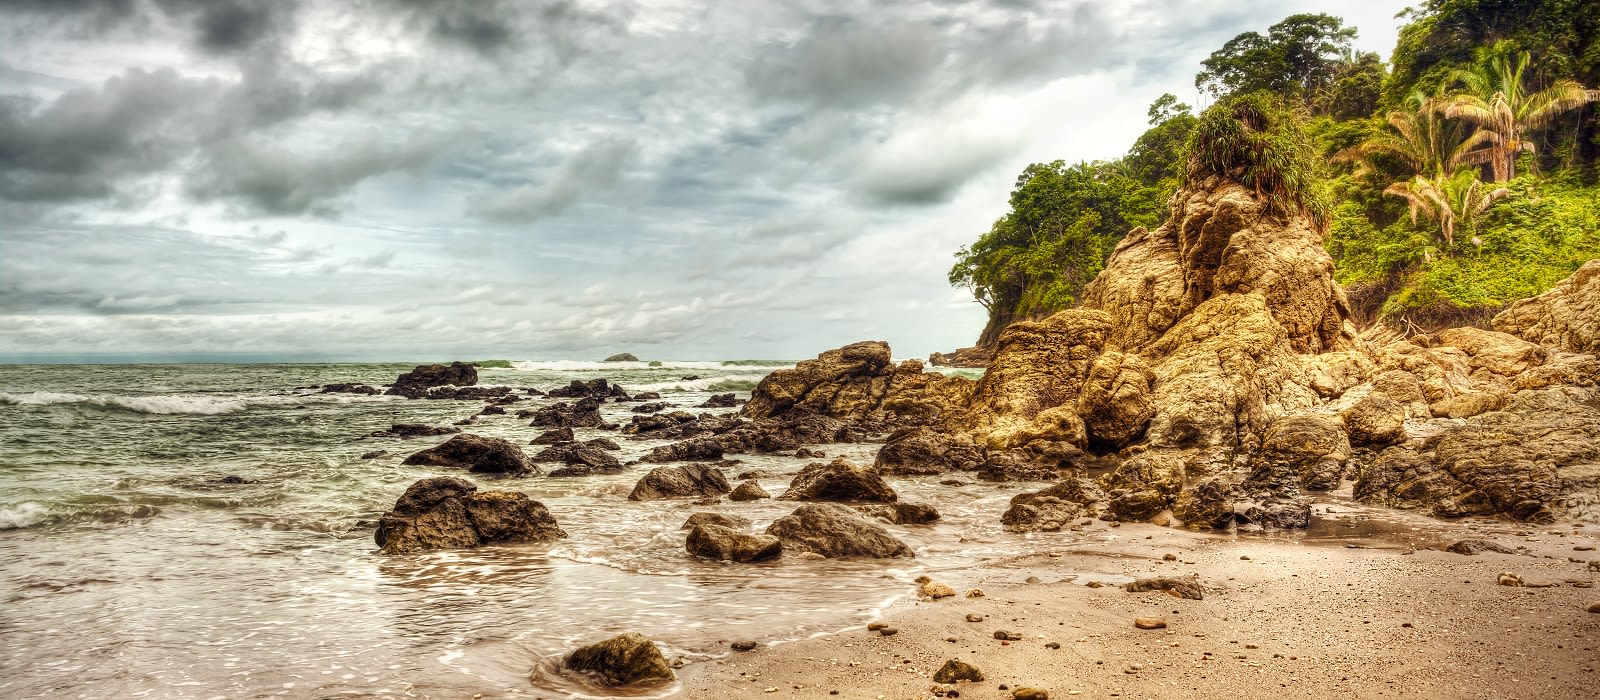 Enchanting Travels Dramatic storm on the beach of Costa Rica, Manuel Antonio national park